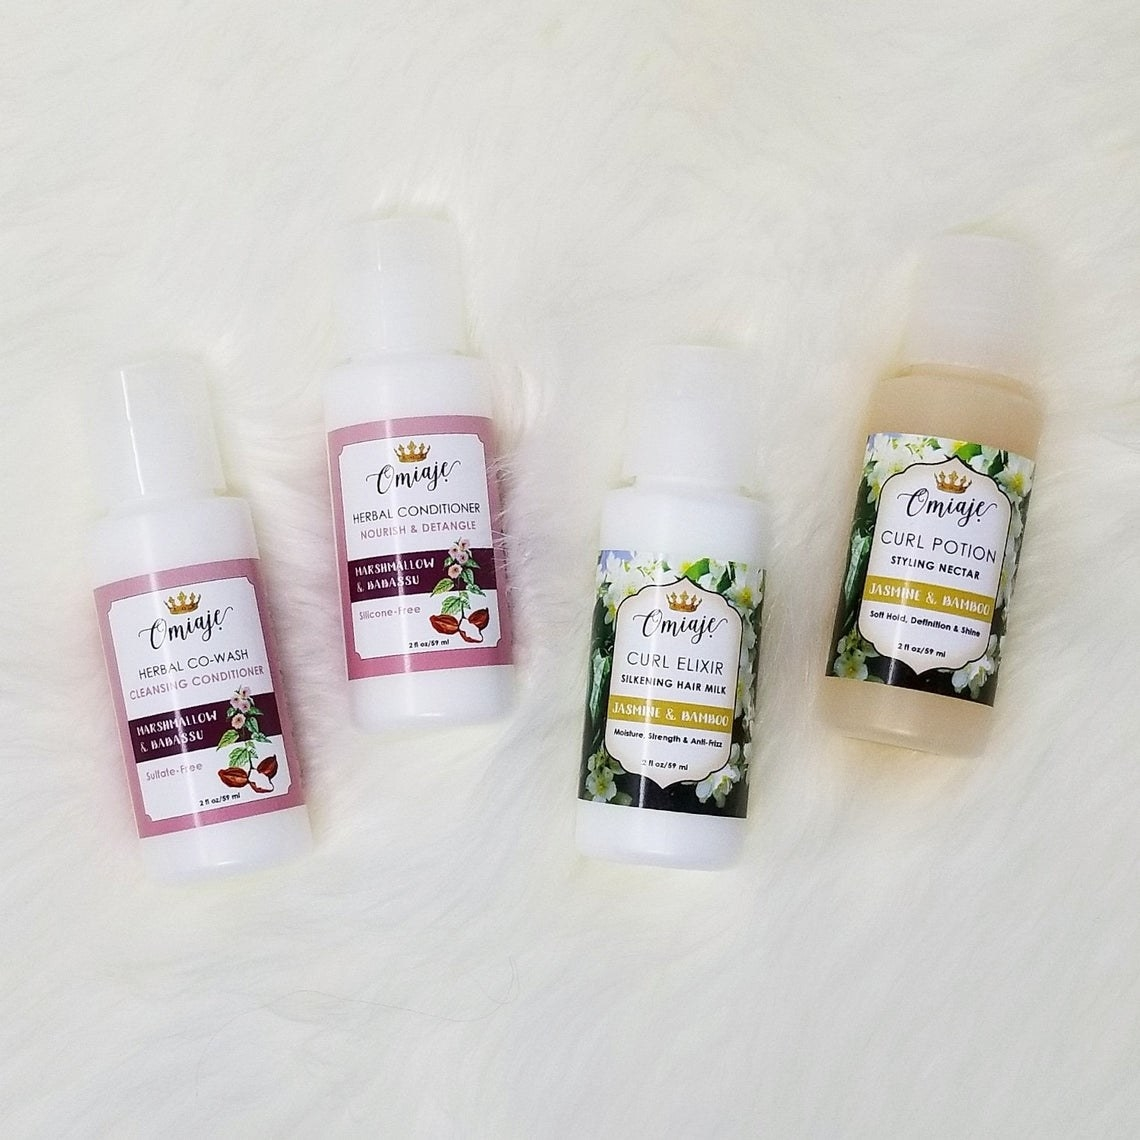 small bottles of herbal cowash, conditioner, curl elixir, and curl potion